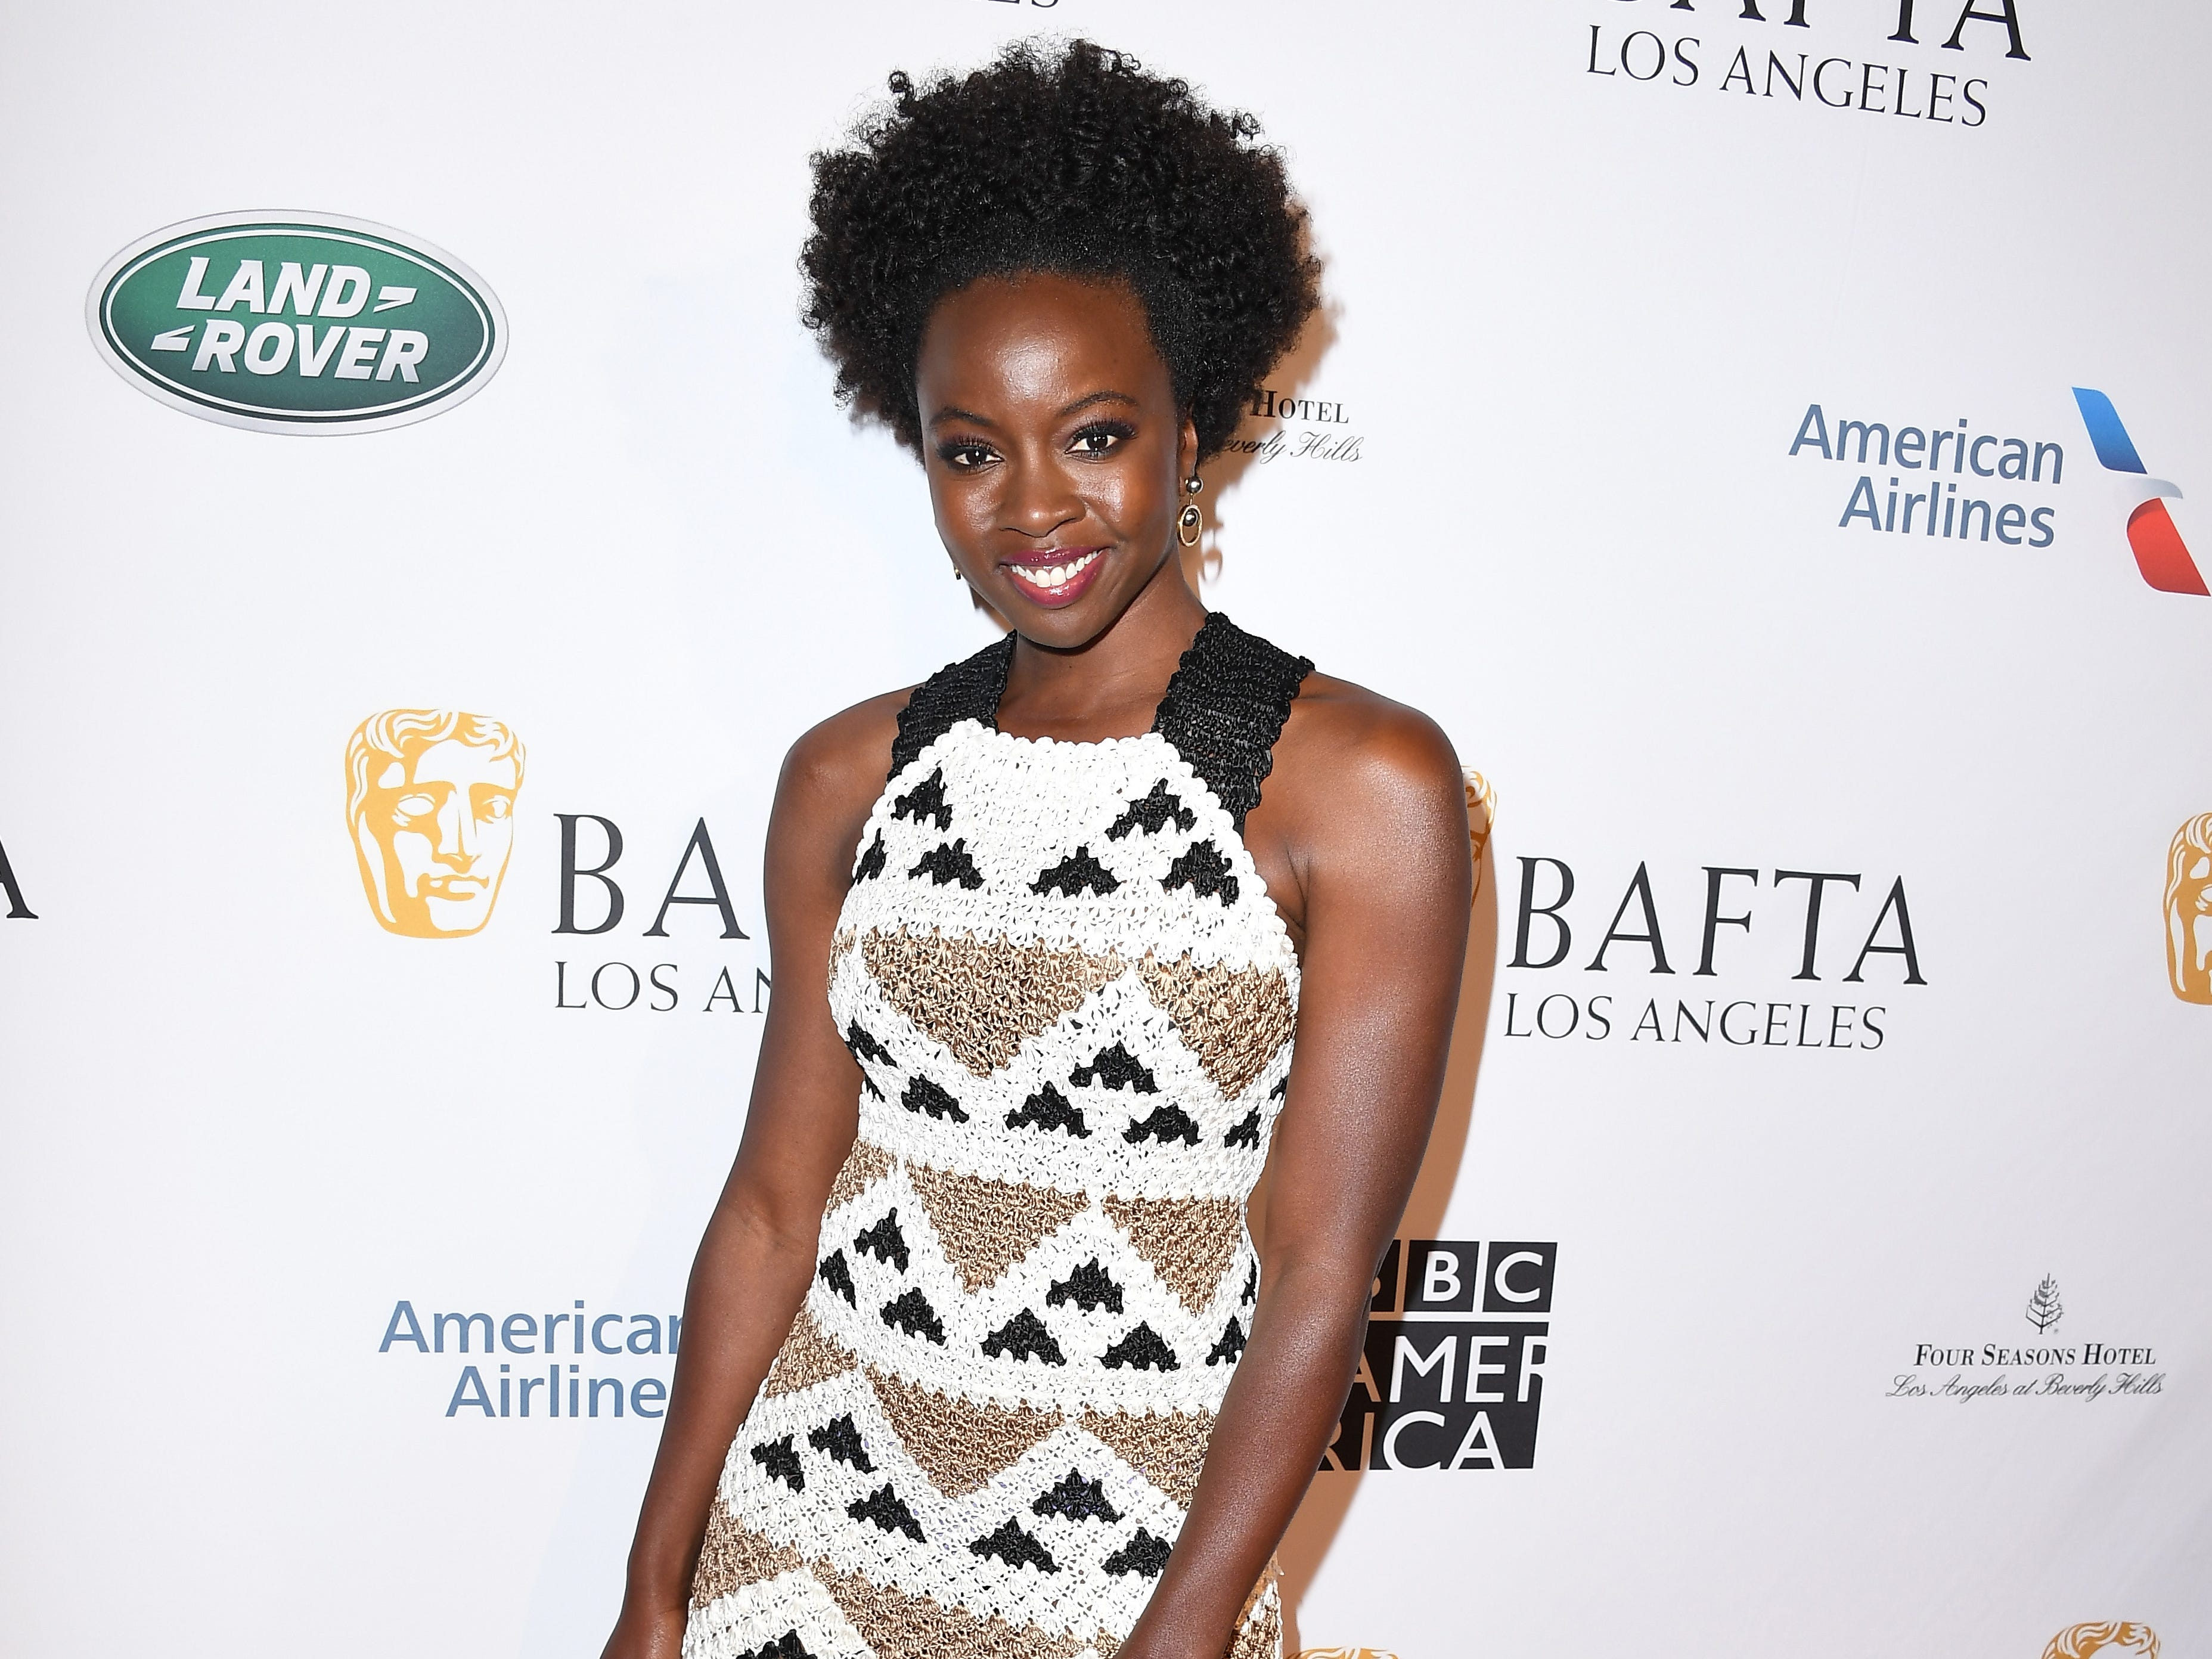 LOS ANGELES, CA - JANUARY 05:  Danai Gurira attends The BAFTA Los Angeles Tea Party at Four Seasons Hotel Los Angeles at Beverly Hills on January 5, 2019 in Los Angeles, California.  (Photo by Steve Granitz/WireImage) ORG XMIT: 775261683 ORIG FILE ID: 1077925840